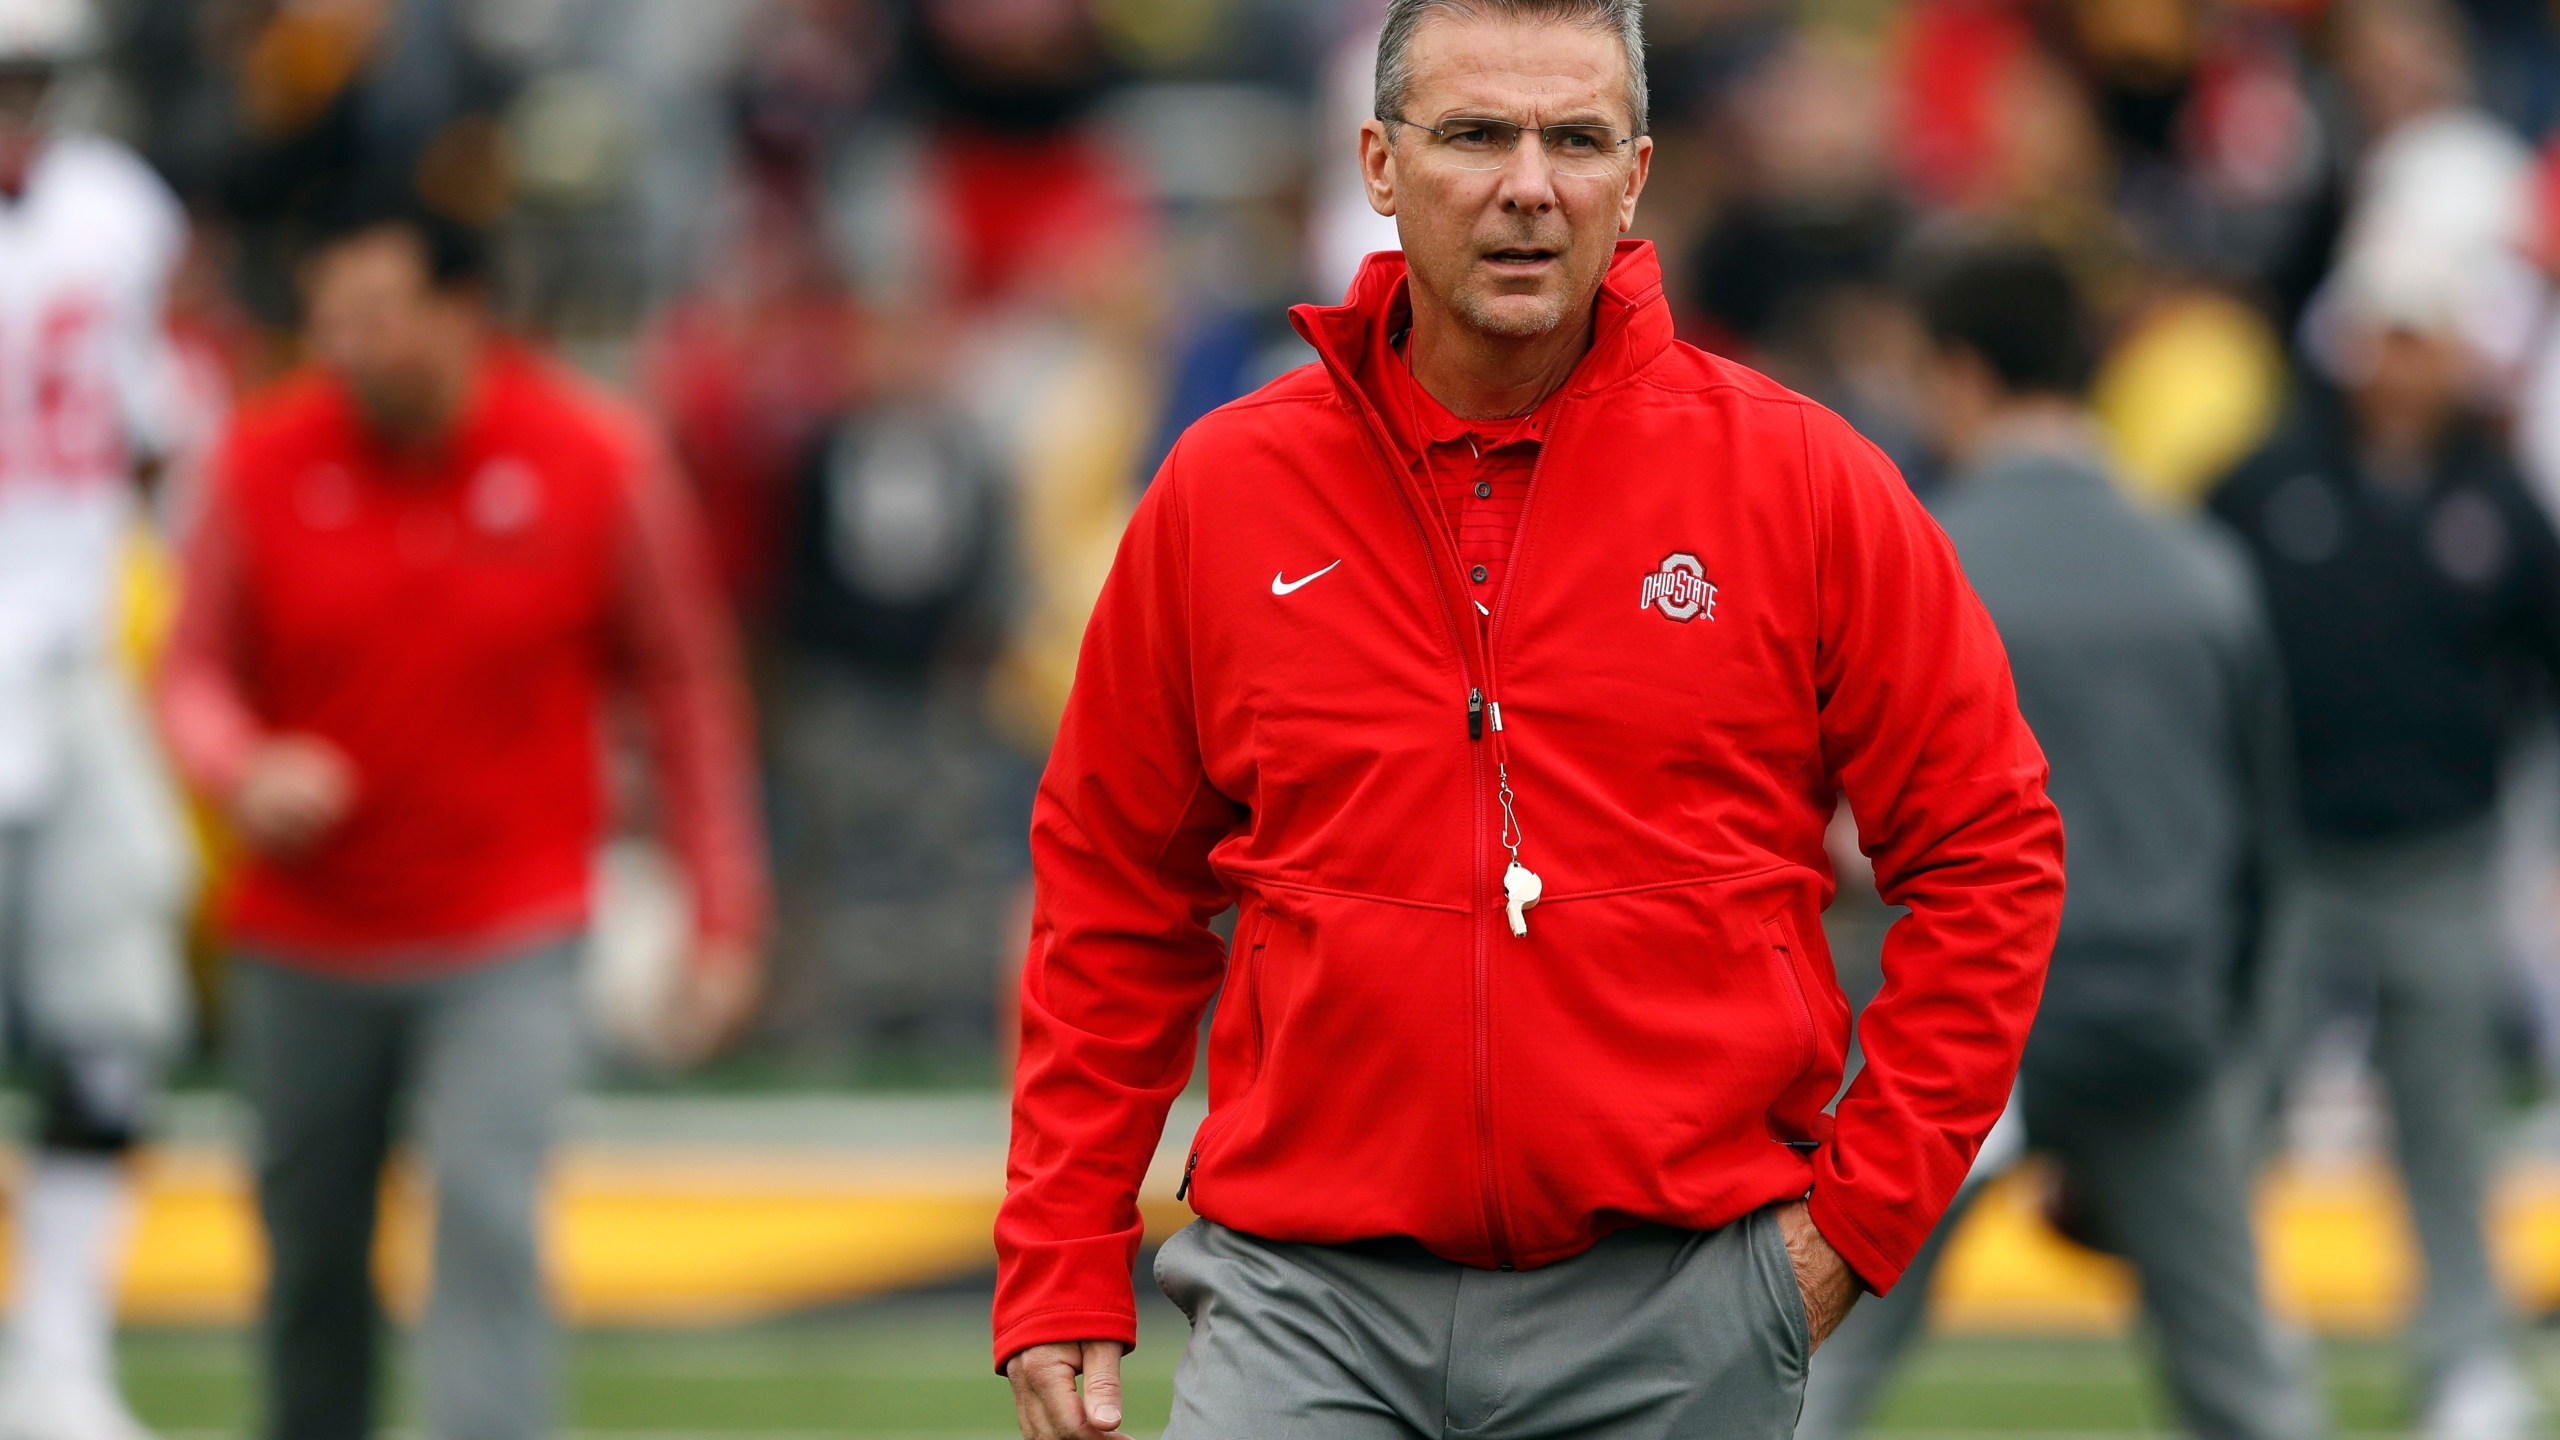 Ohio_State_Meyer__Football_08949-159532.jpg22648455